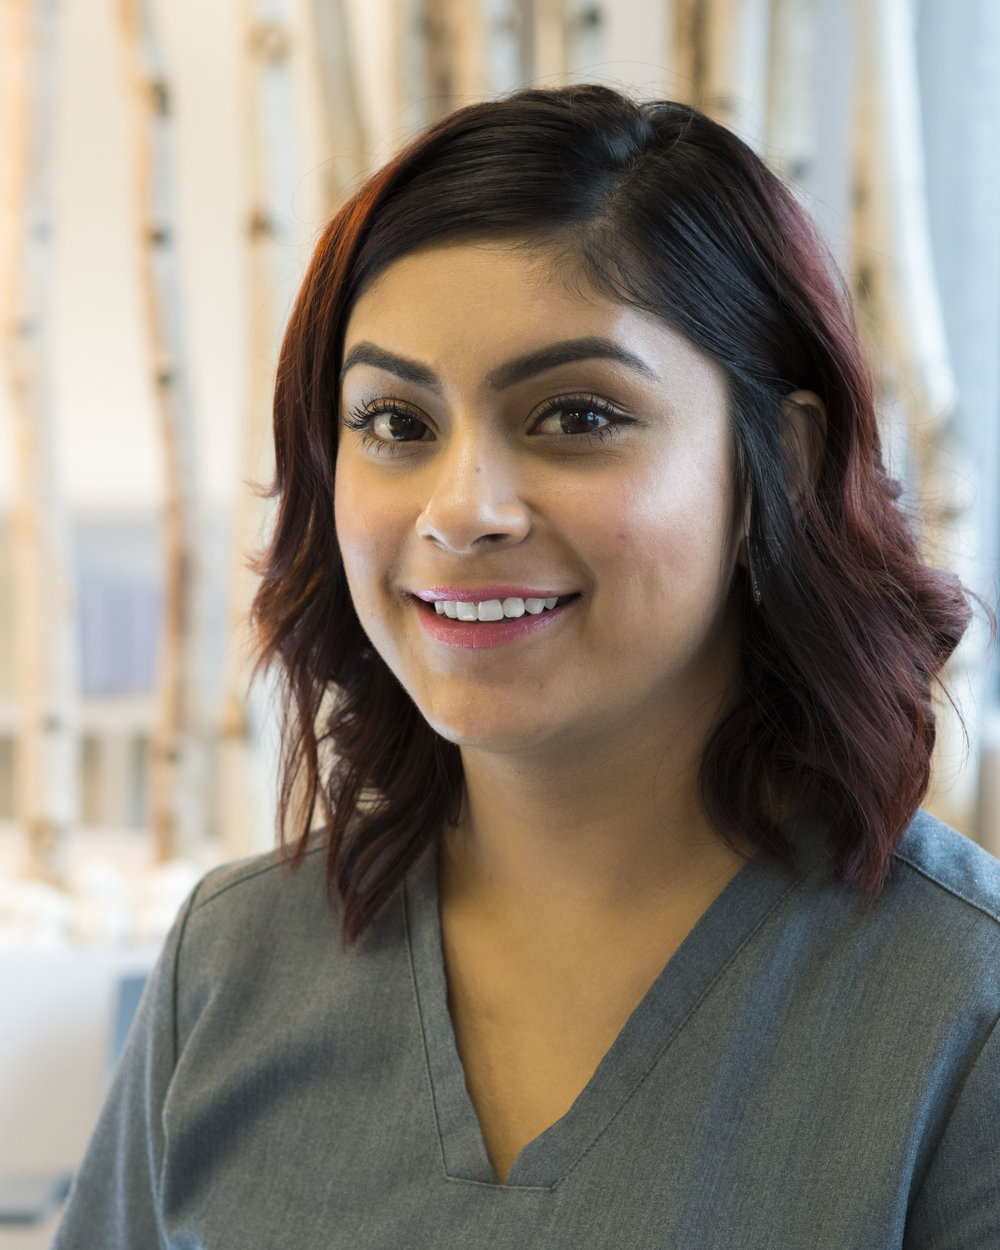 Aesthetician in Columbus, OH